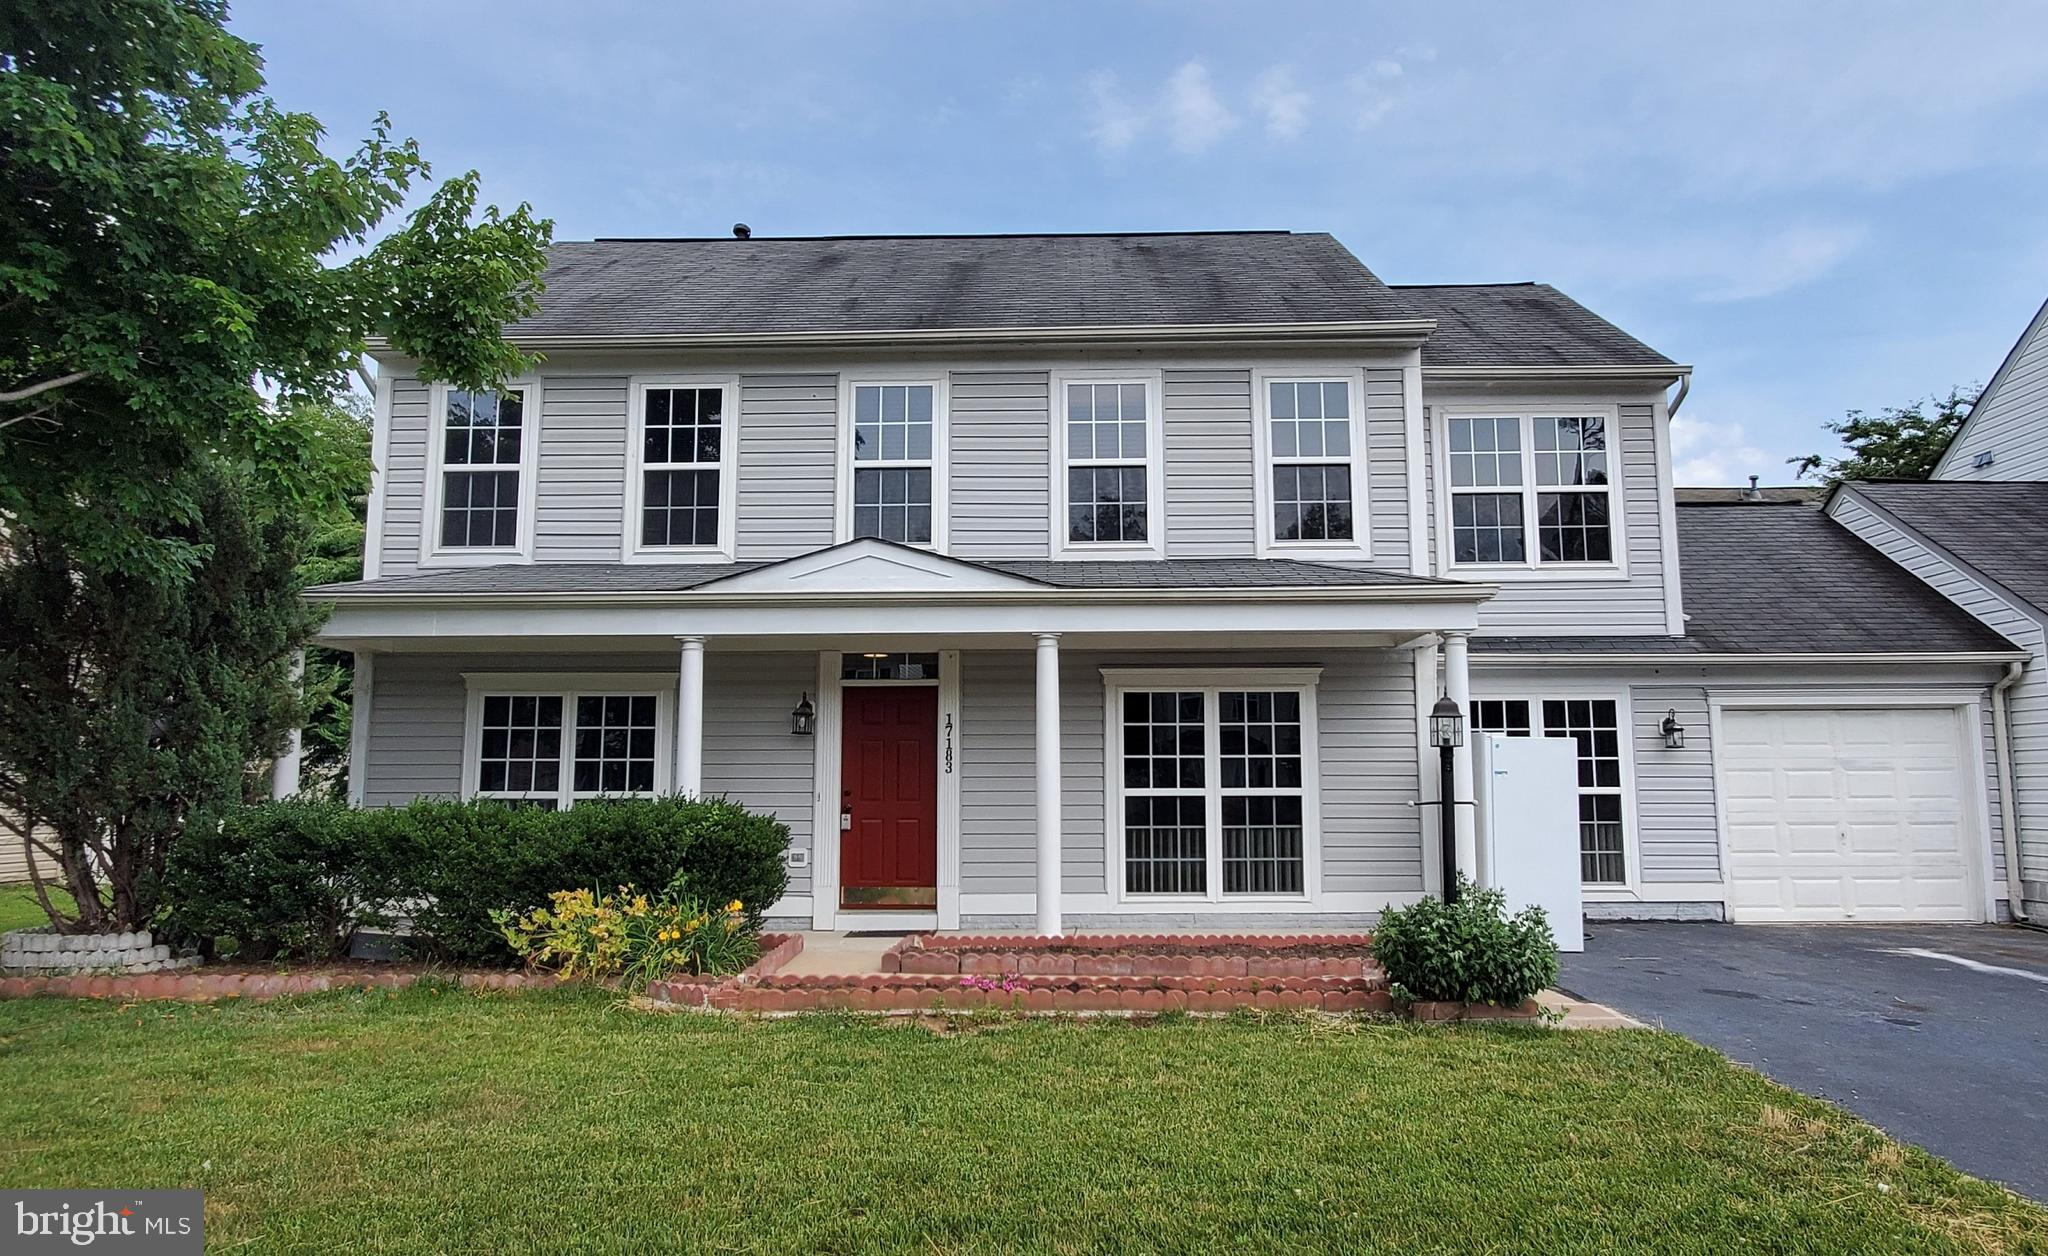 Welcome home! This home has 4 spacious bedrooms and 2.5 baths freshly painted throughout, deep clean